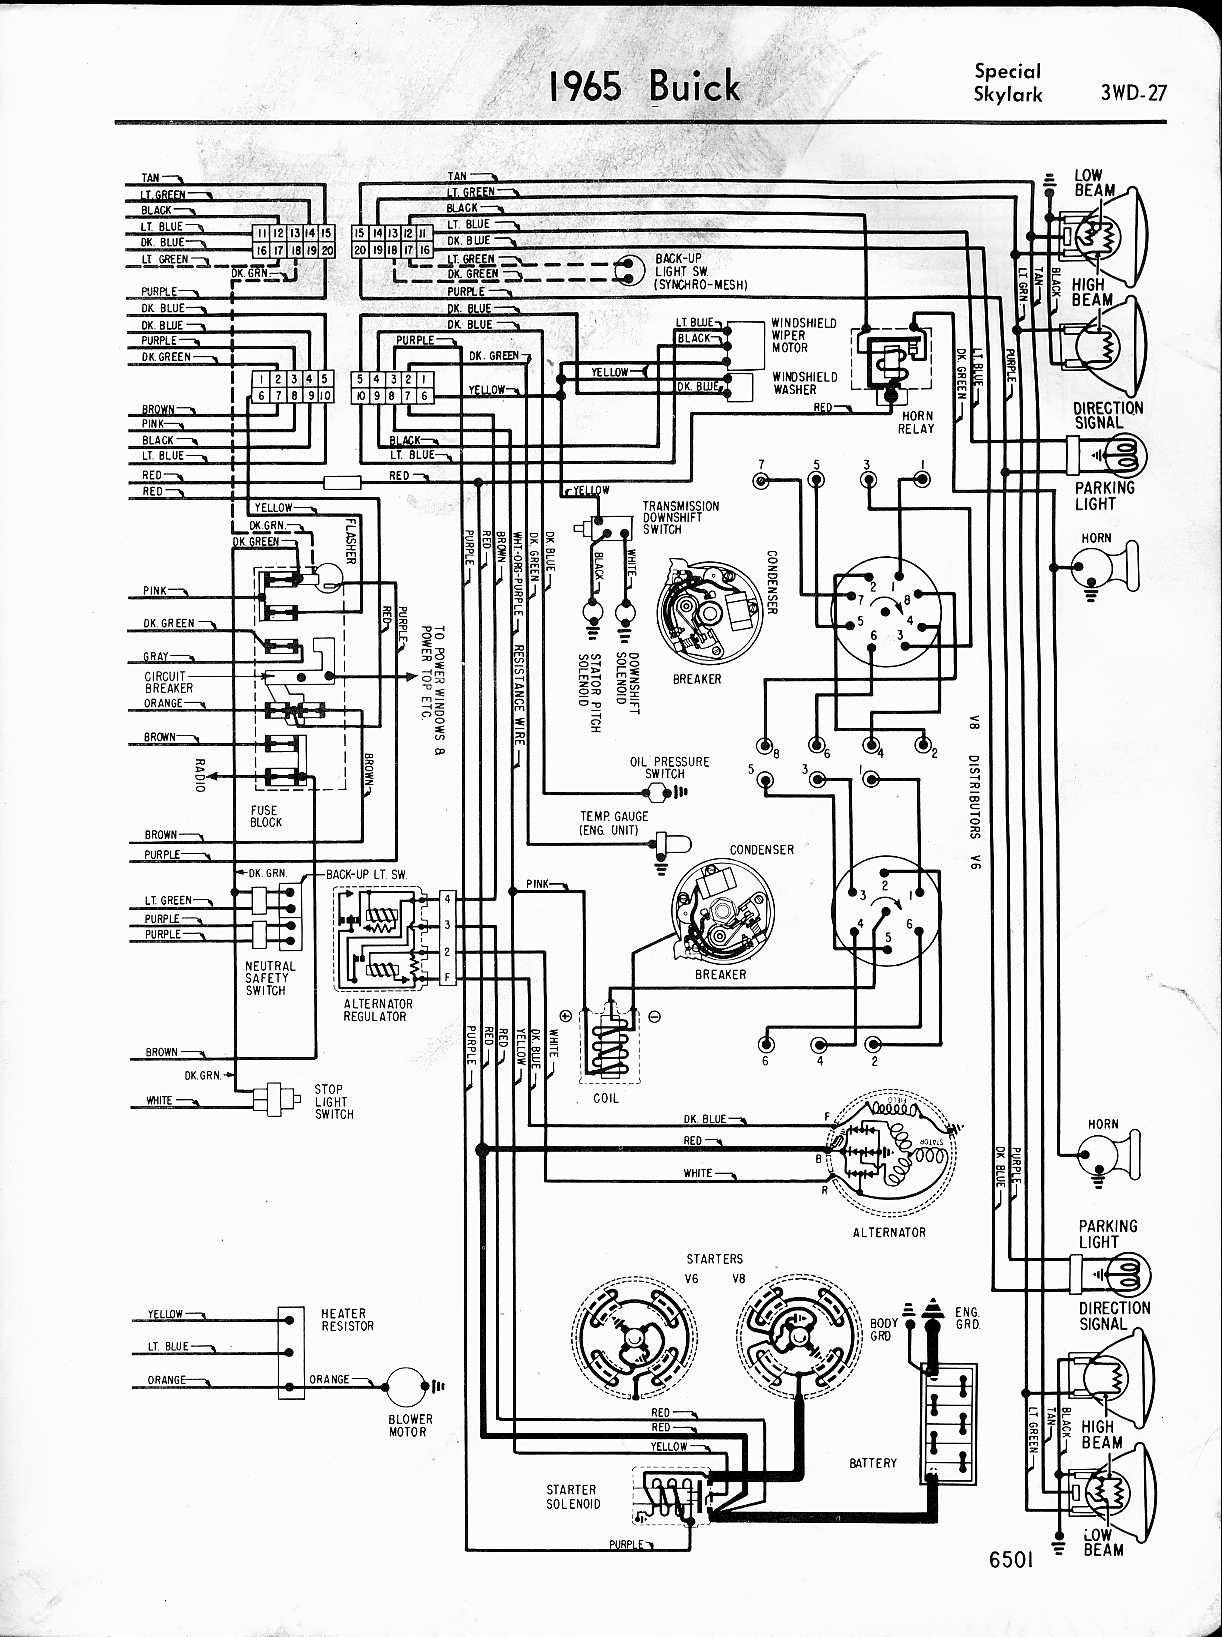 wiring diagram for 1961 buick lesabre wildcat and electra